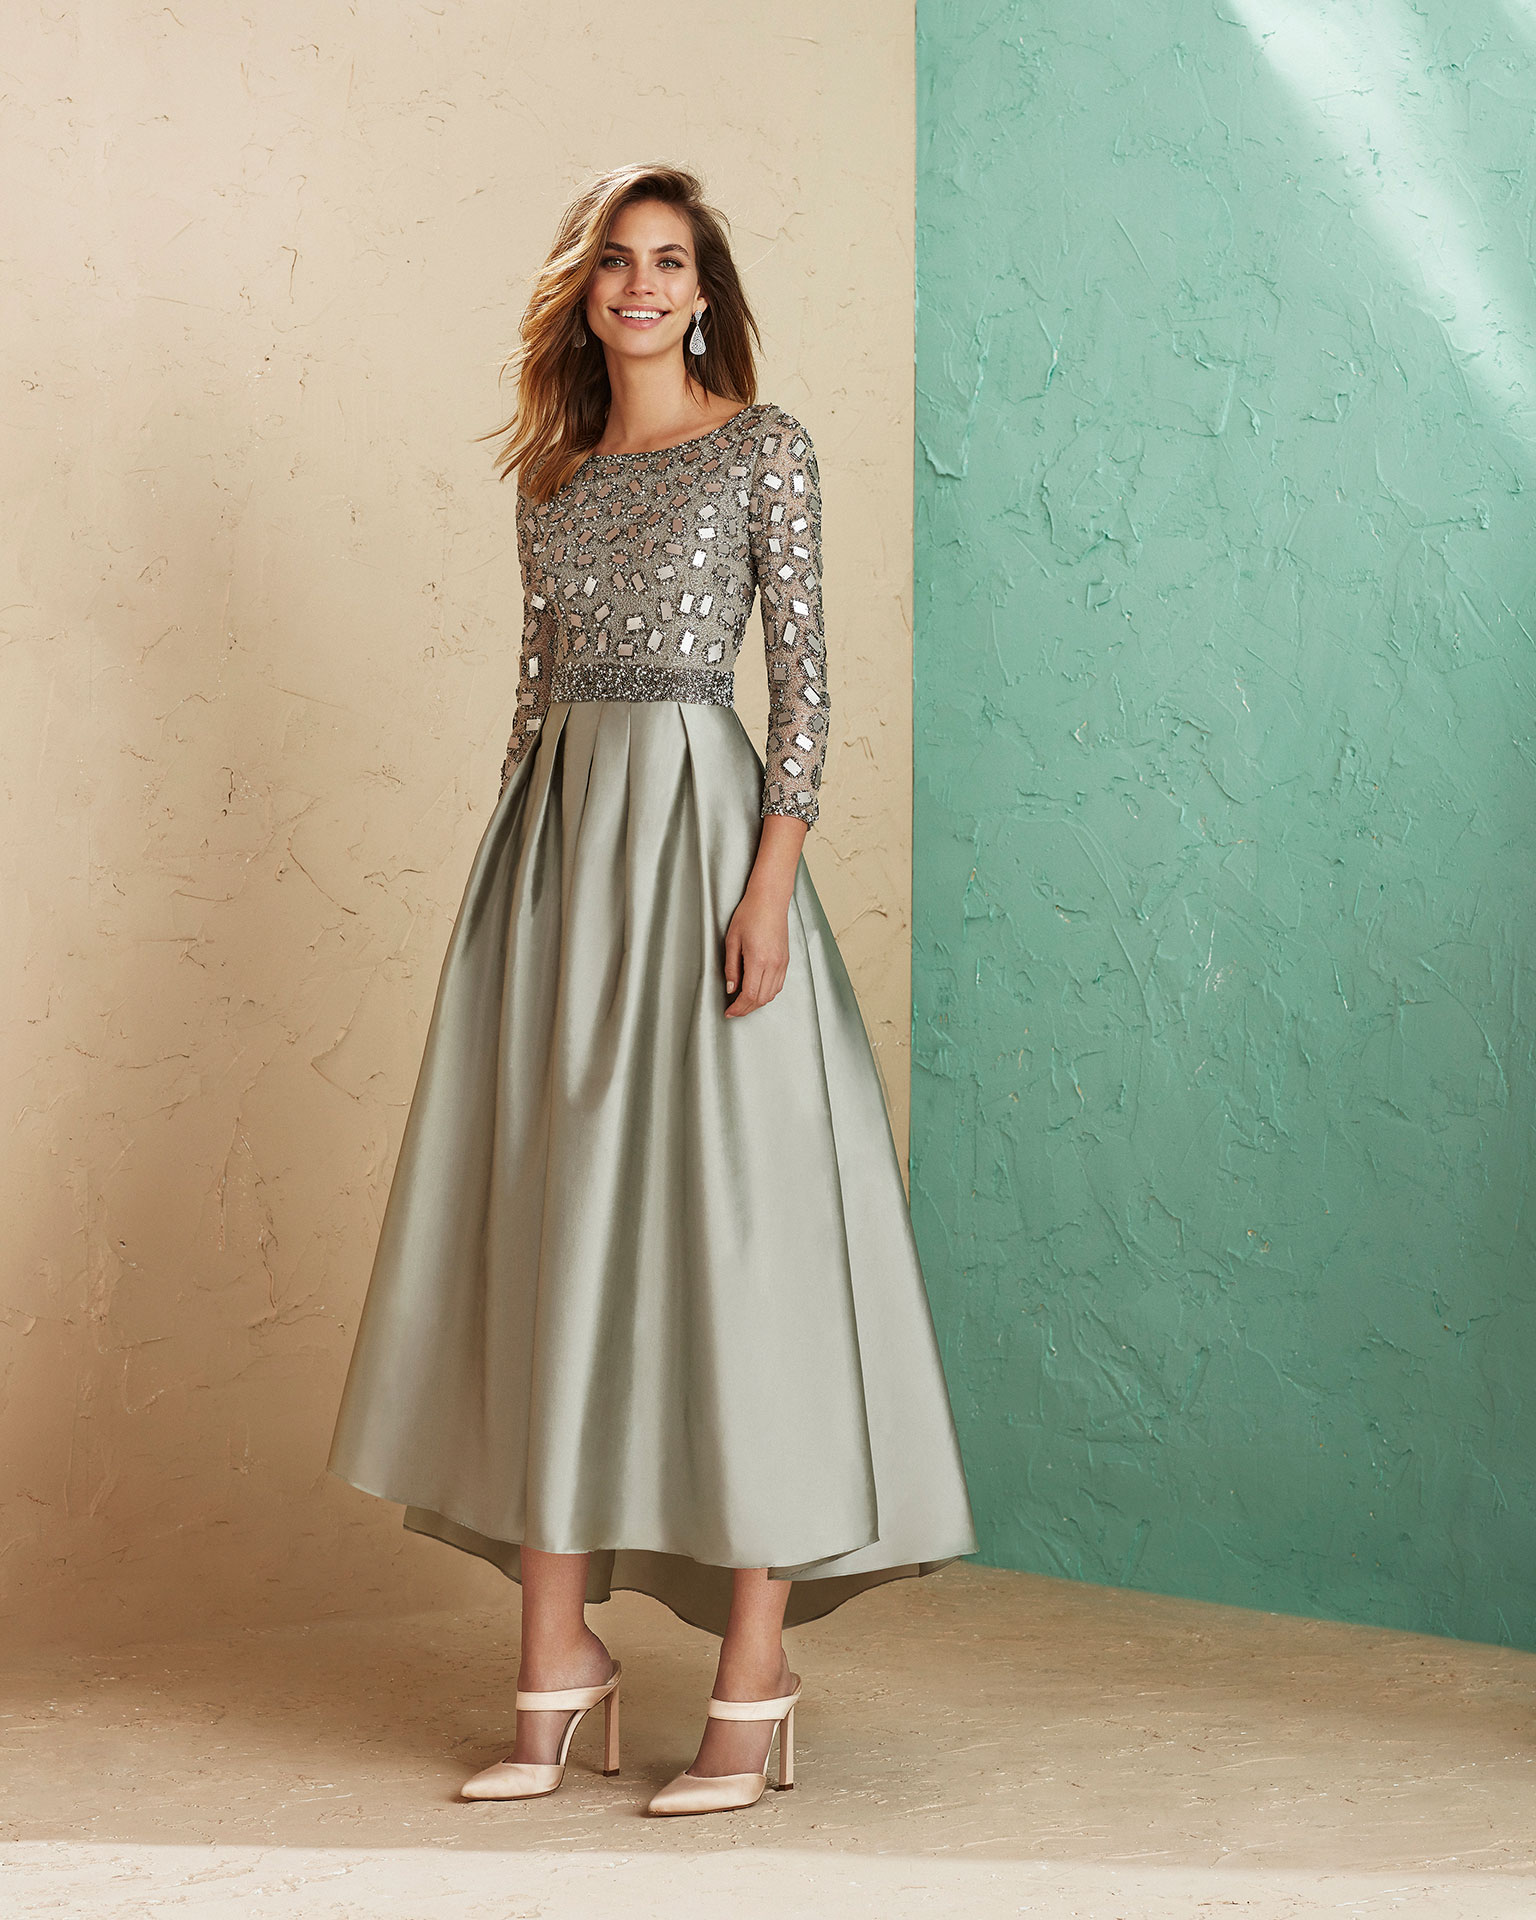 Beaded taffeta cocktail dress. With bateau neckline and three-quarter sleeves. High-low skirt. 2019 MARFIL BARCELONA Collection.